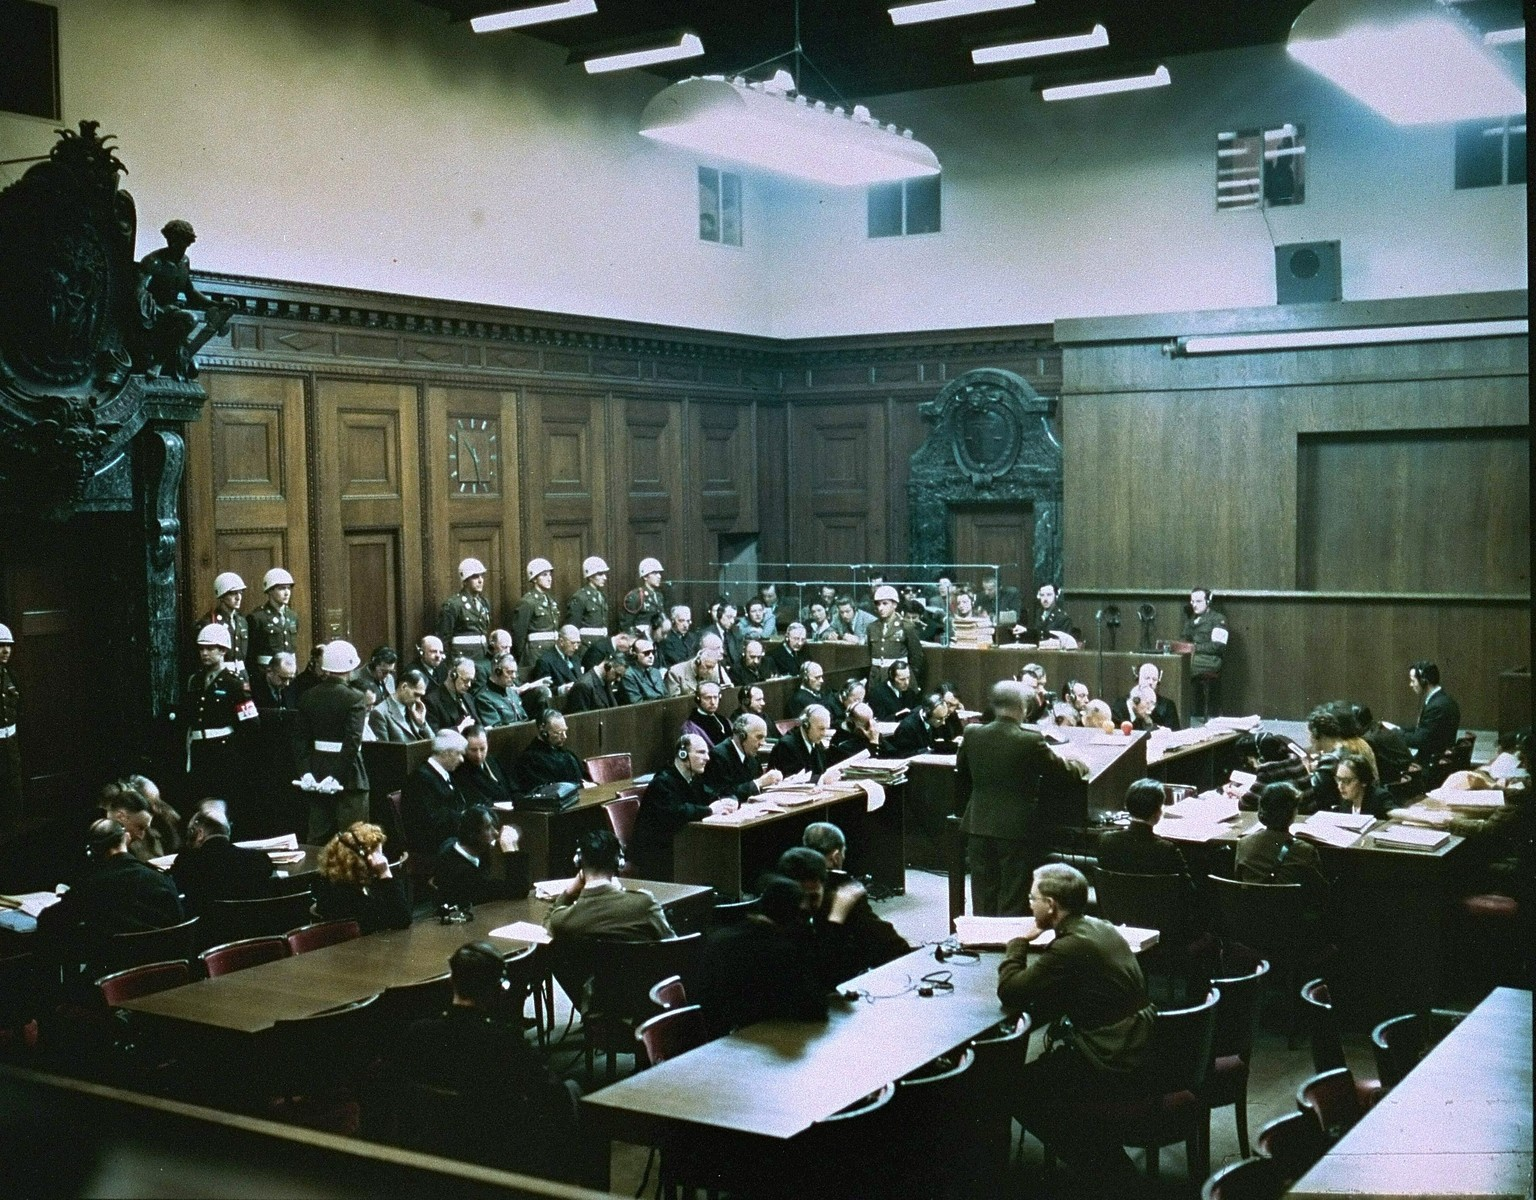 A member of the Russian delegation addresses the court at the International Military Tribunal trial of war criminals at Nuremberg.